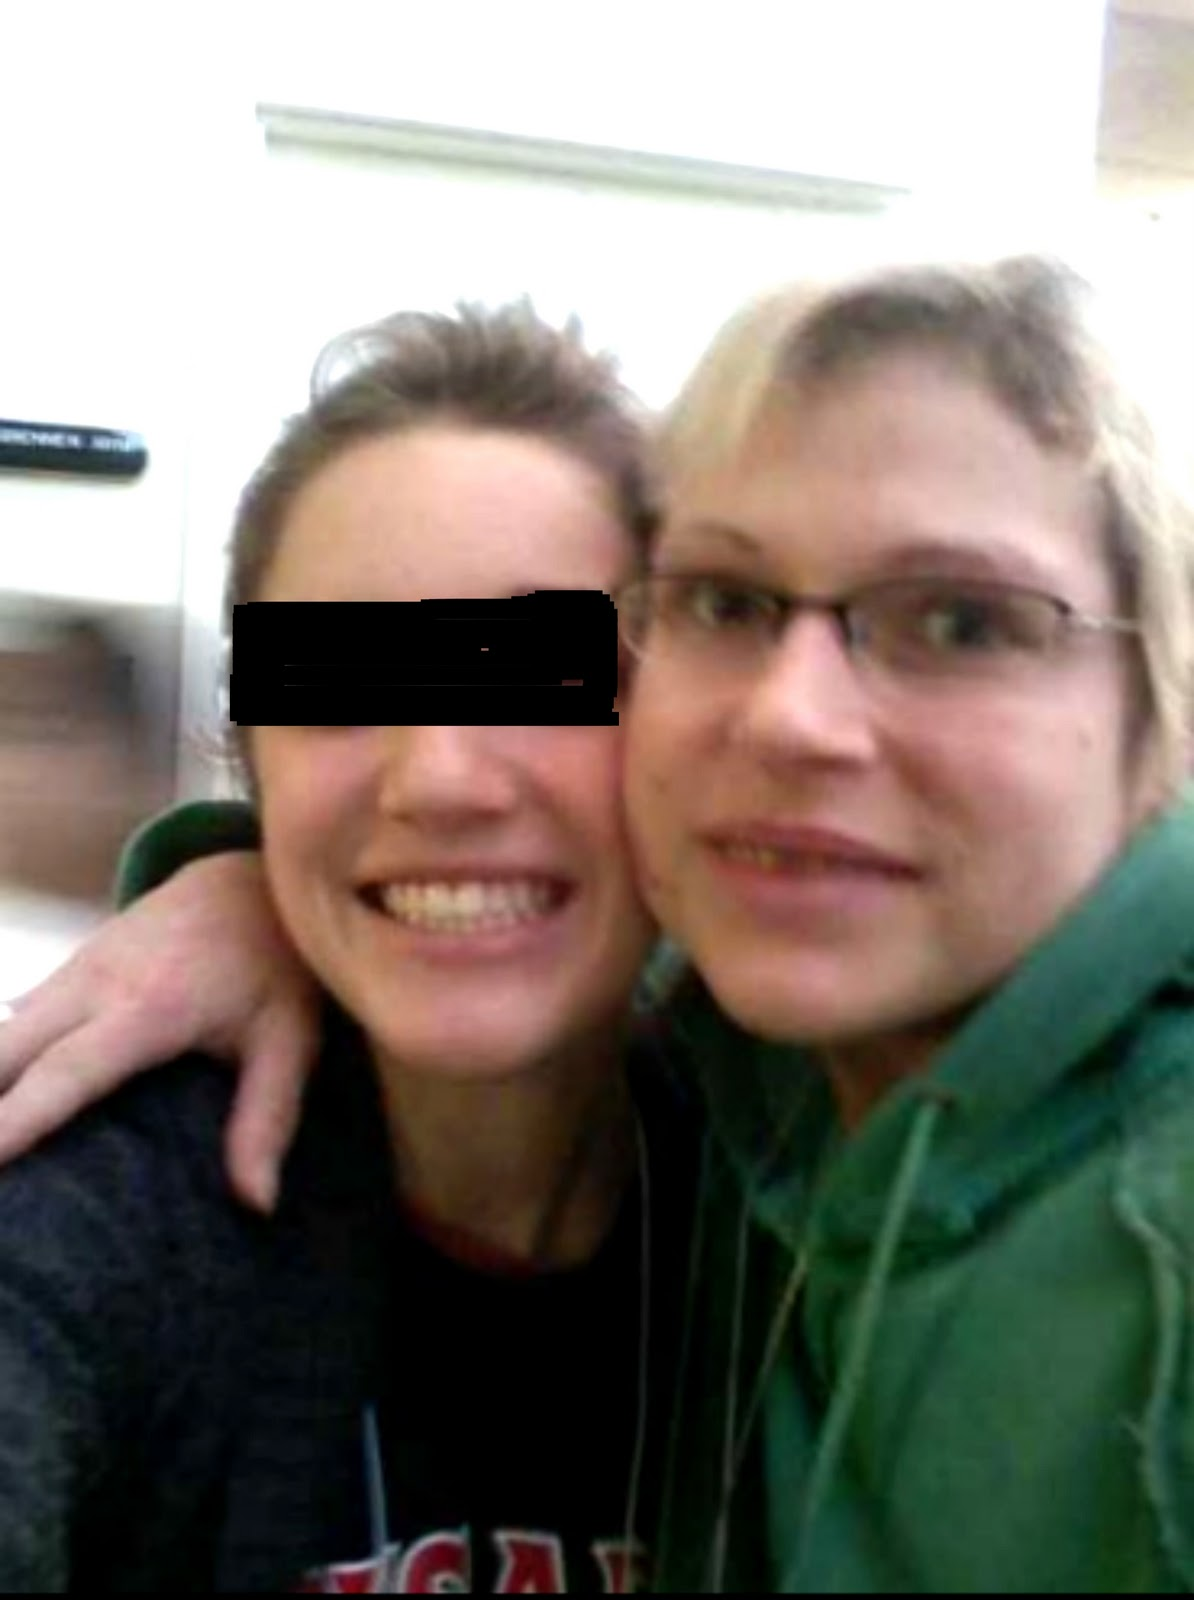 ANOREXIA & BULIMIA: THE TRAGIC LIFE OF AIMEE MOORE [LATEST UPDATE: NOT